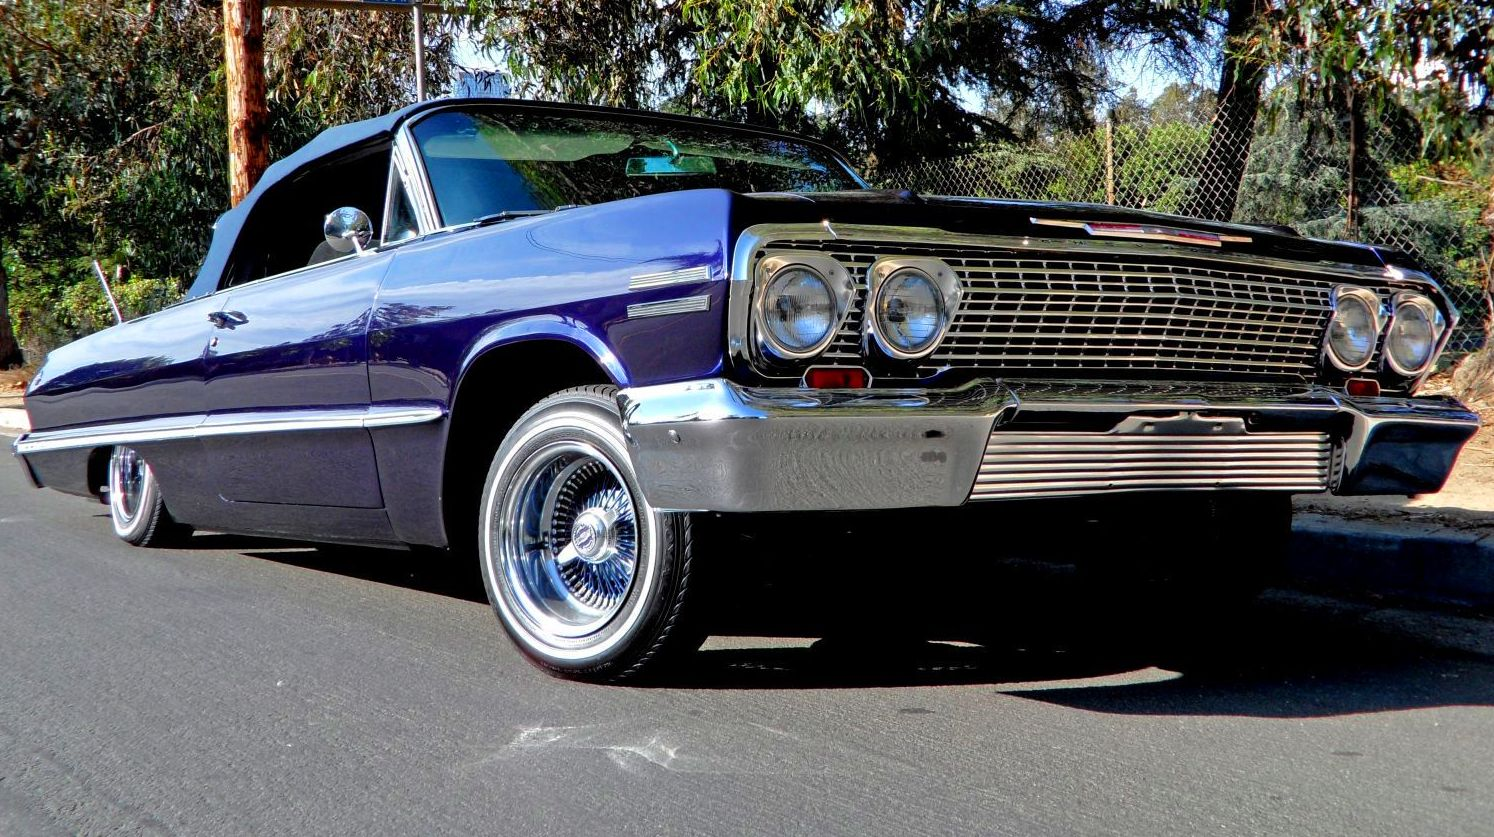 1963 chevrolet impala ss by west coast customs for kobe bryant review top speed. Black Bedroom Furniture Sets. Home Design Ideas